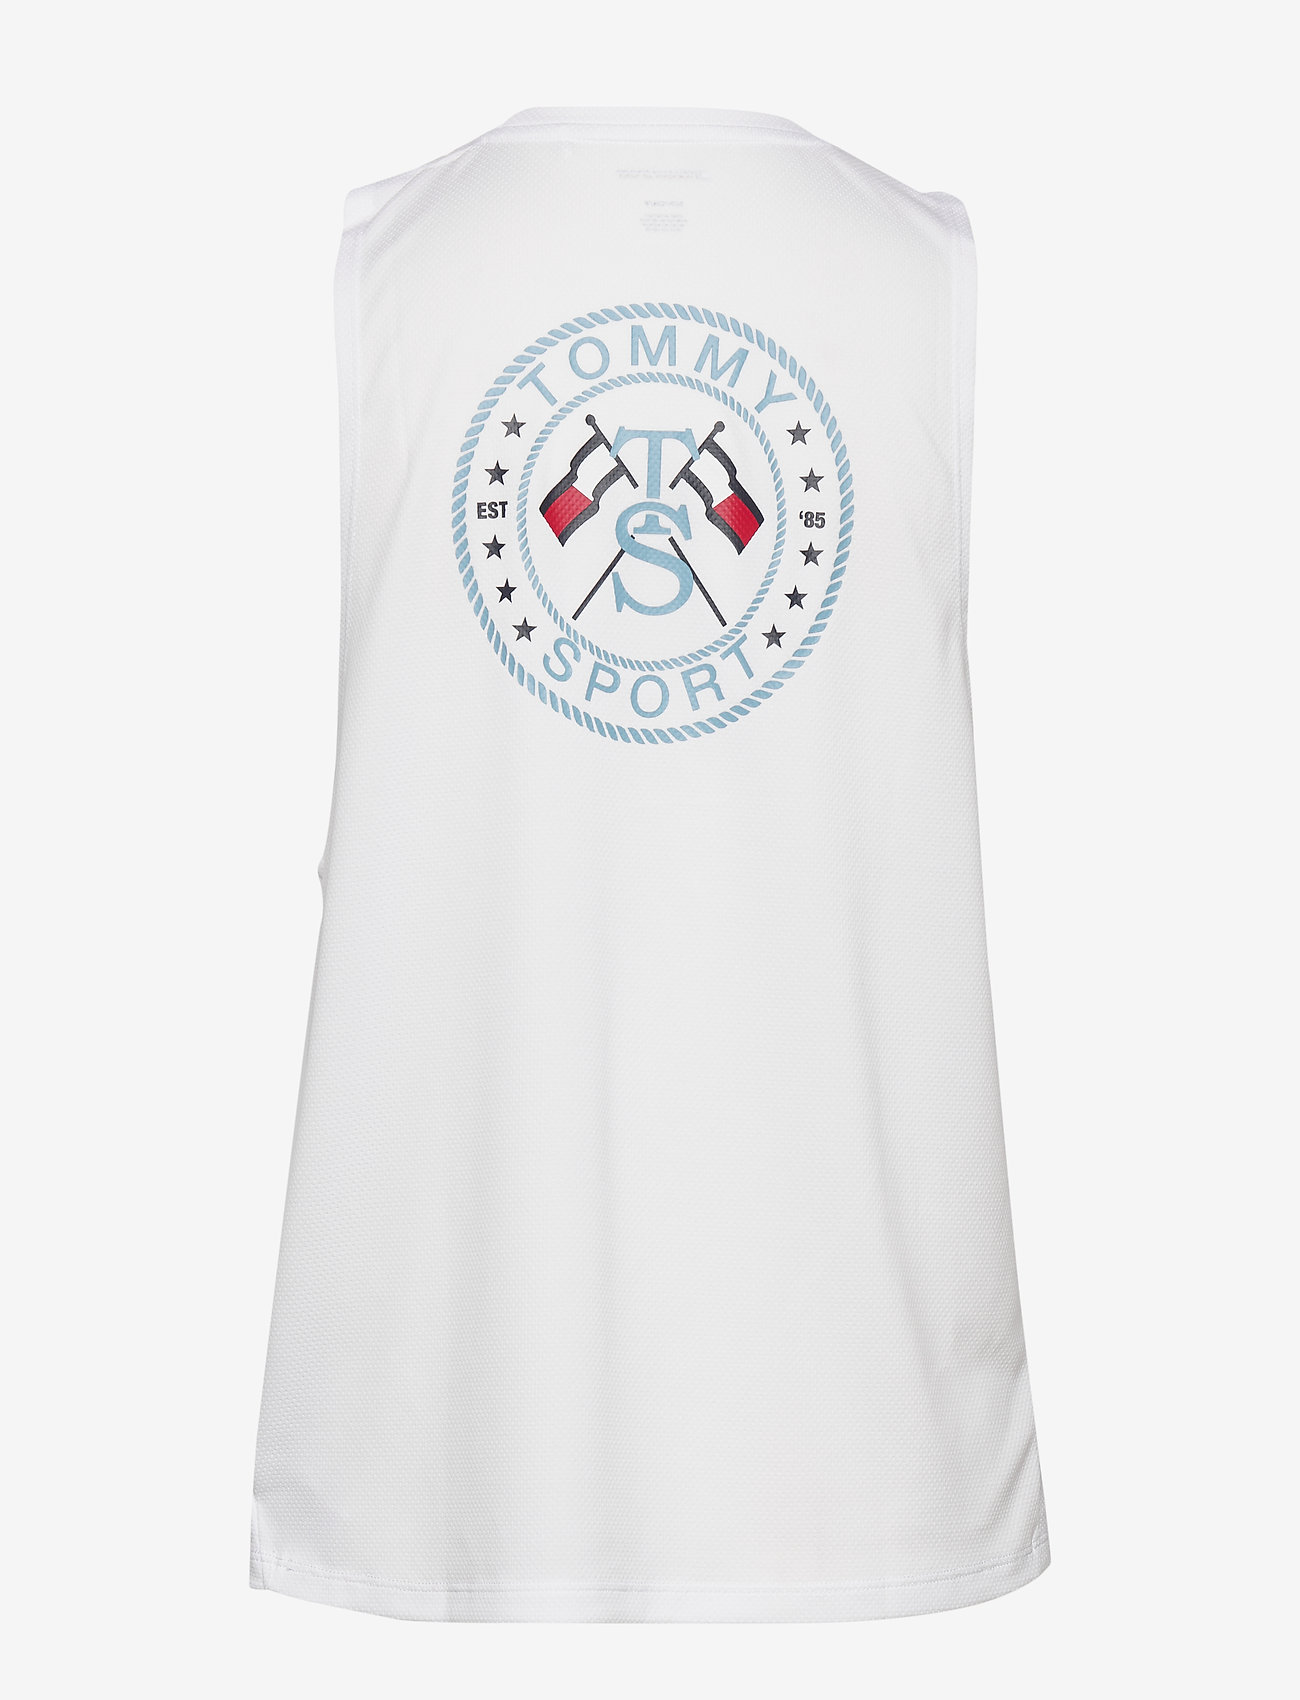 Tommy Sport - PERFORMANCE PRINTED TANK TOP - tank tops - white - 1